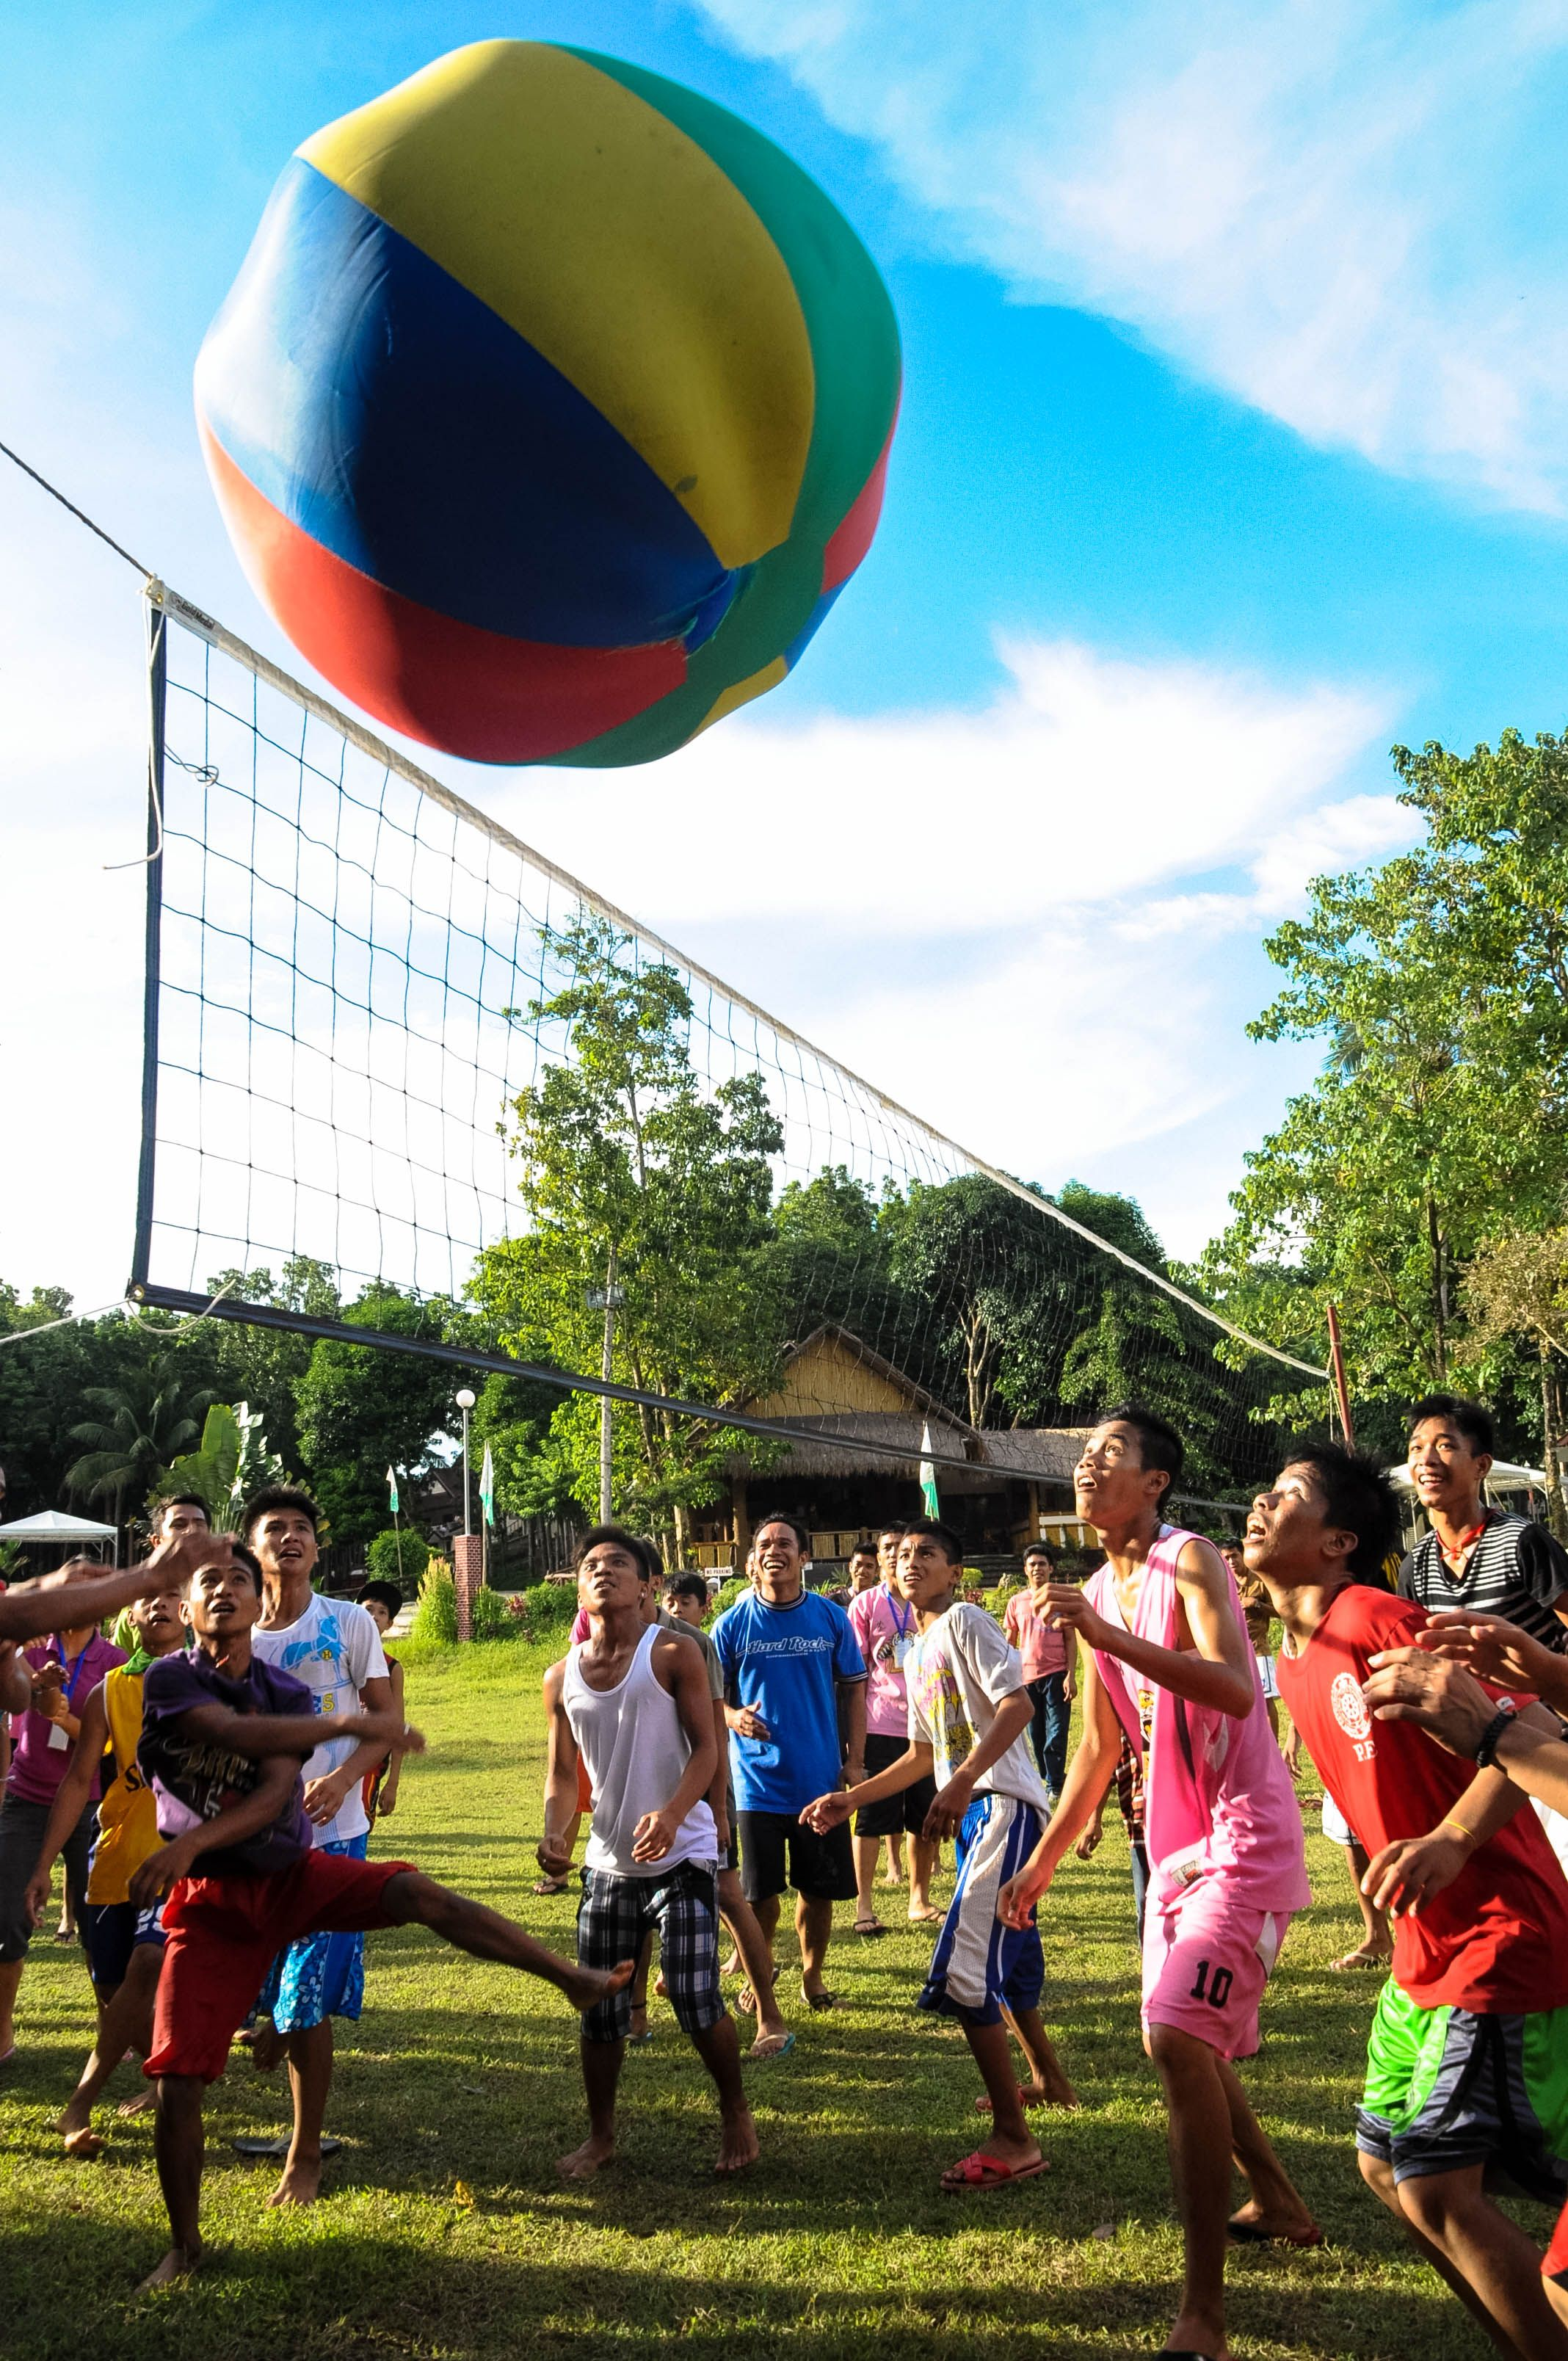 Ever Tried Playing Big Ball Volleyball Try It With Friends At Goducate Training Center Iloilo Gtc Musttry Visitus Goducate